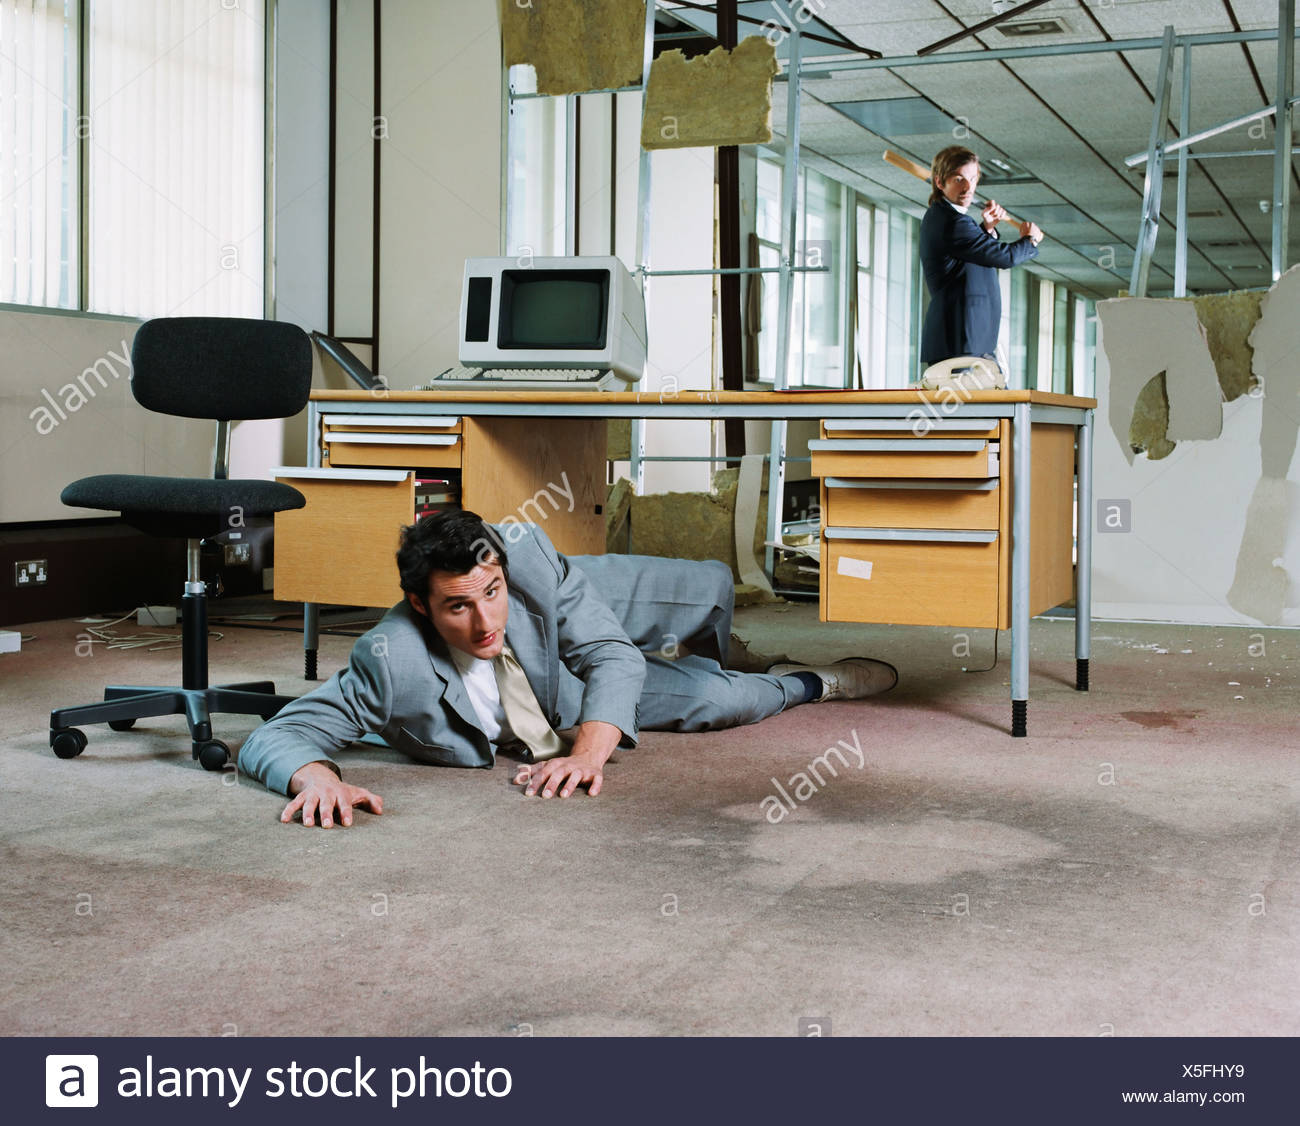 Businessman hiding from colleague's attack - Stock Image